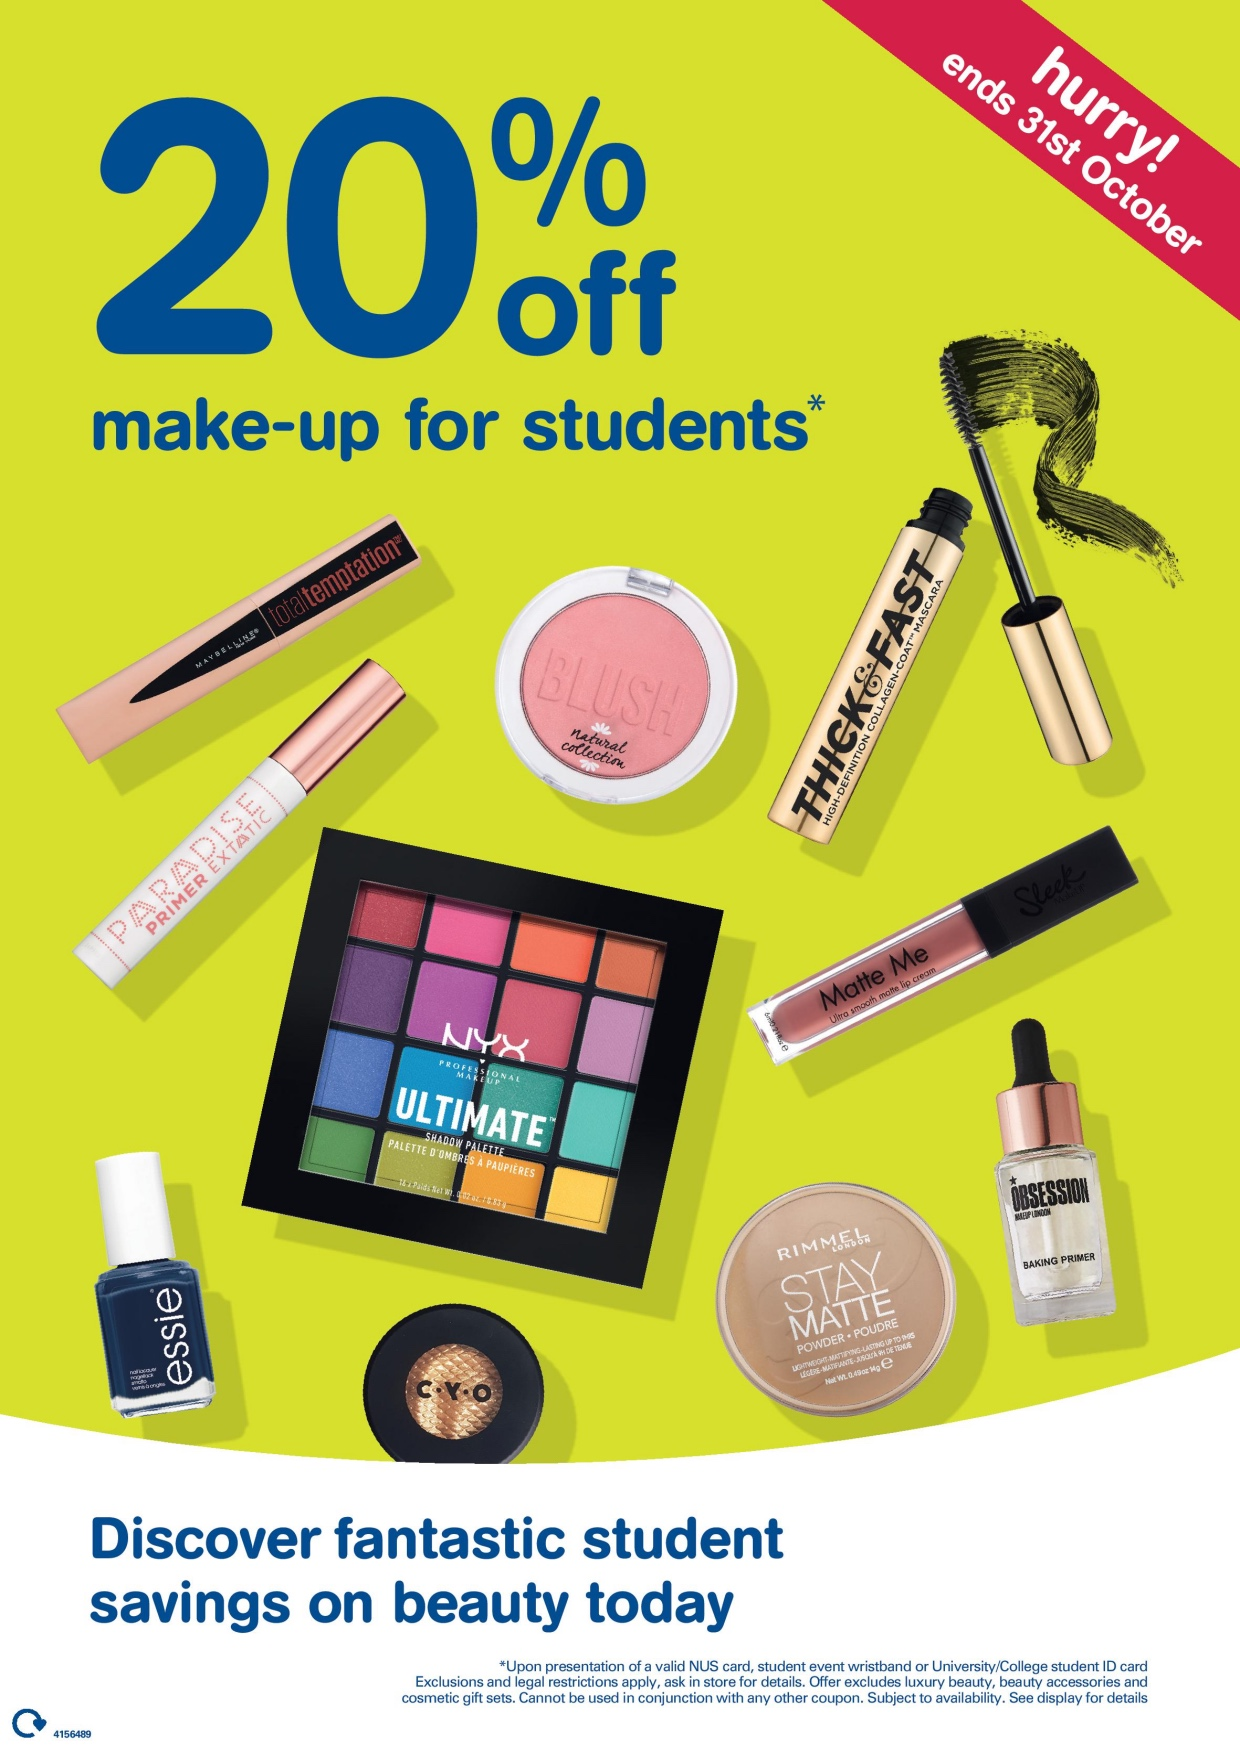 Fantastic savings for Students on beauty at Boots